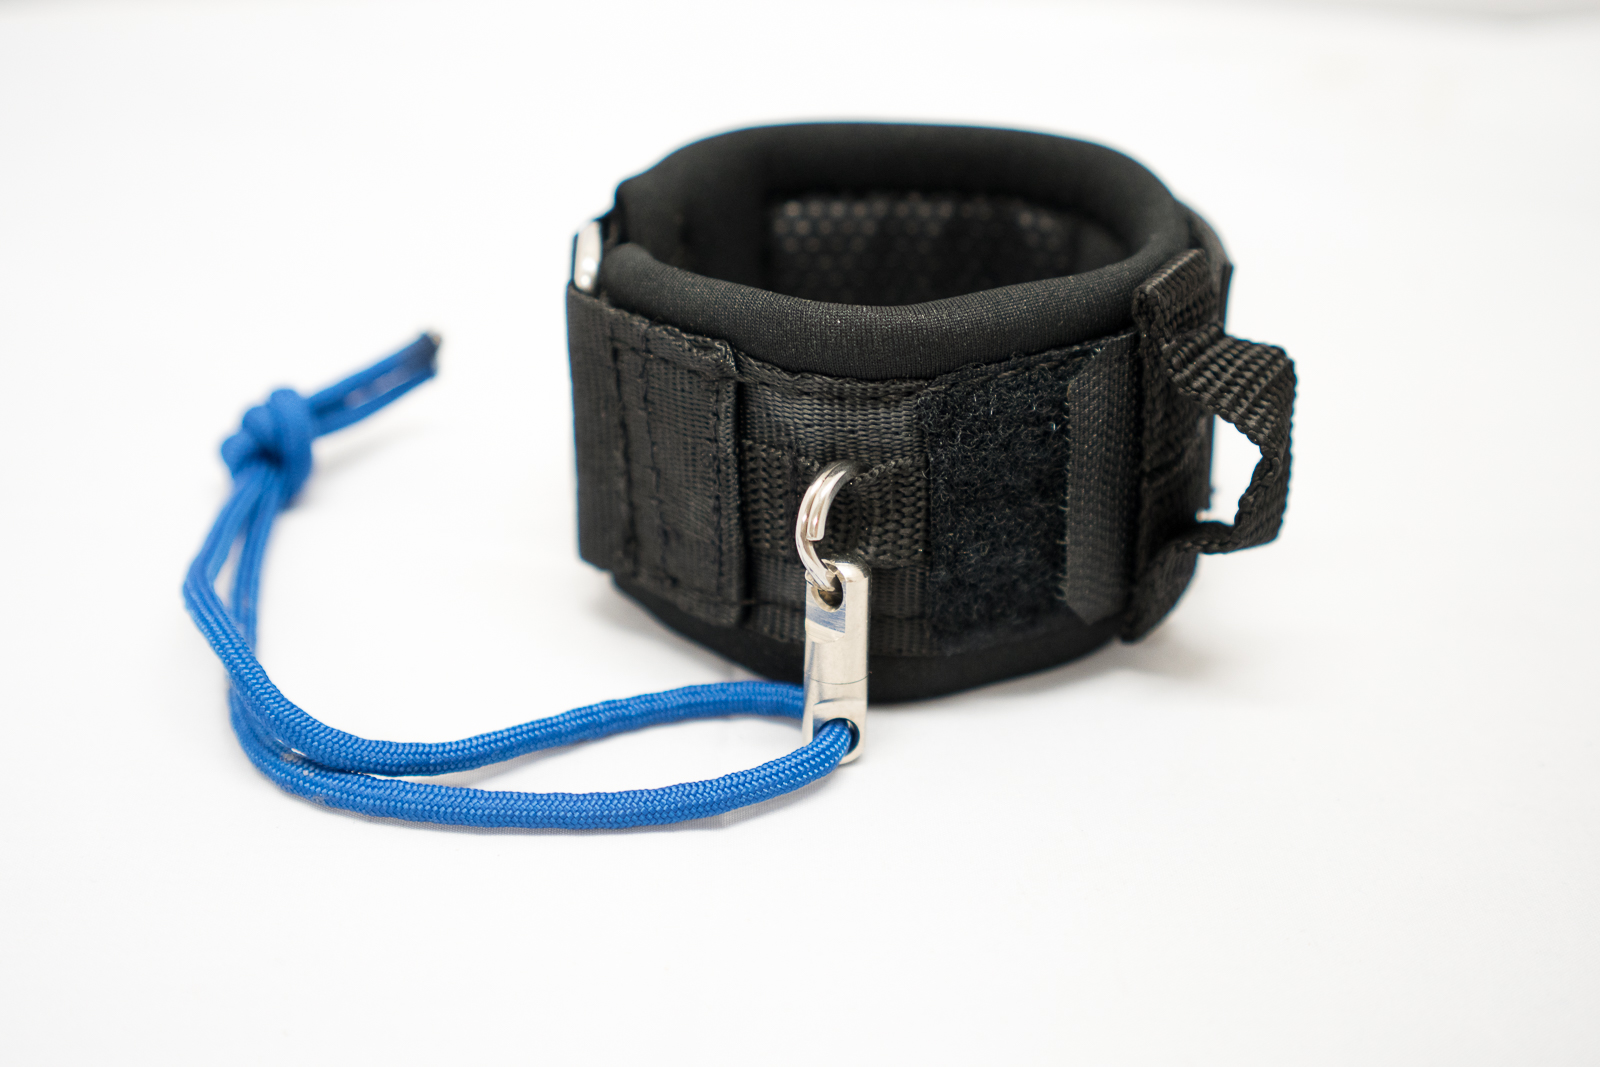 Camera Housing Wrist Leash